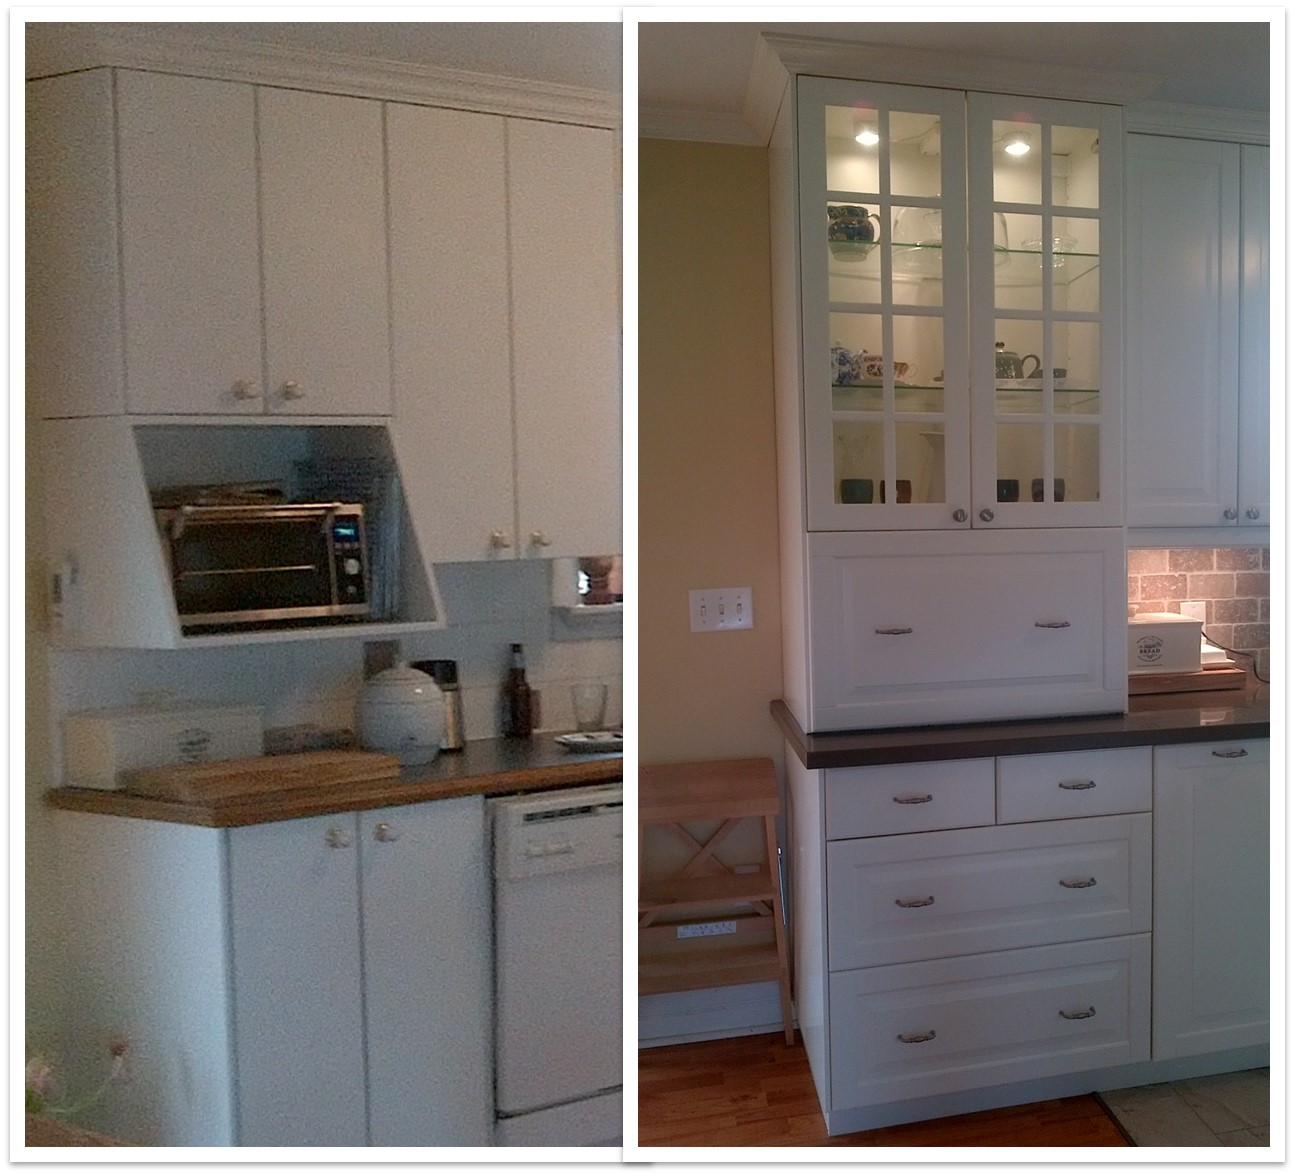 Cabinets From Ikea: Custom IKEA Kitchen Cabinets For A Family On The Go